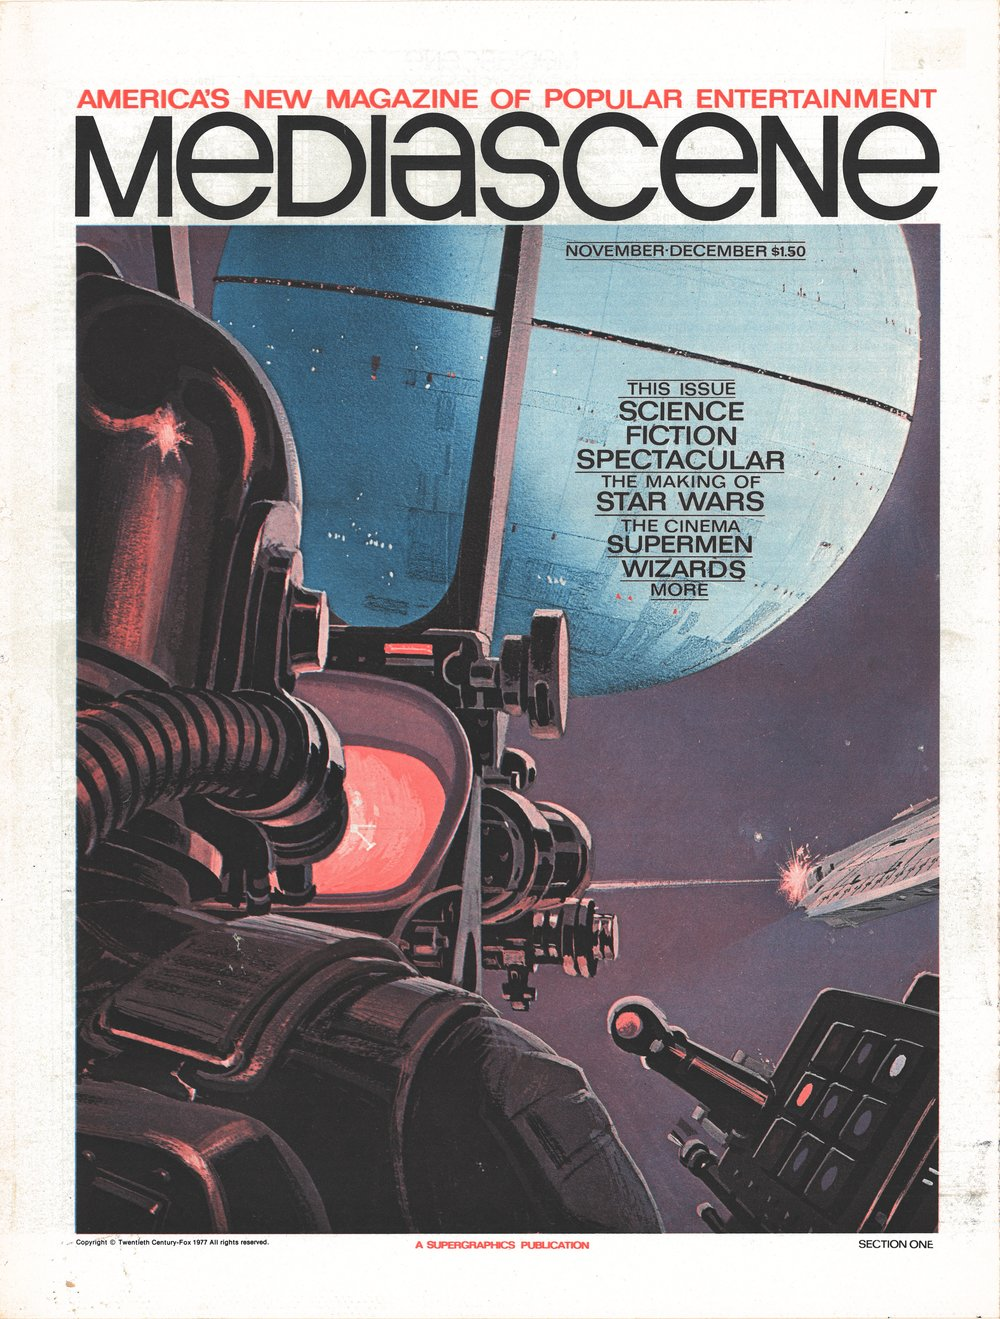 The November-December 1976 issue of  Mediascene  was the first magazine to feature  Star Wars  on the cover, though it apparently went to print late and was not distributed to subscribers until early 1977.